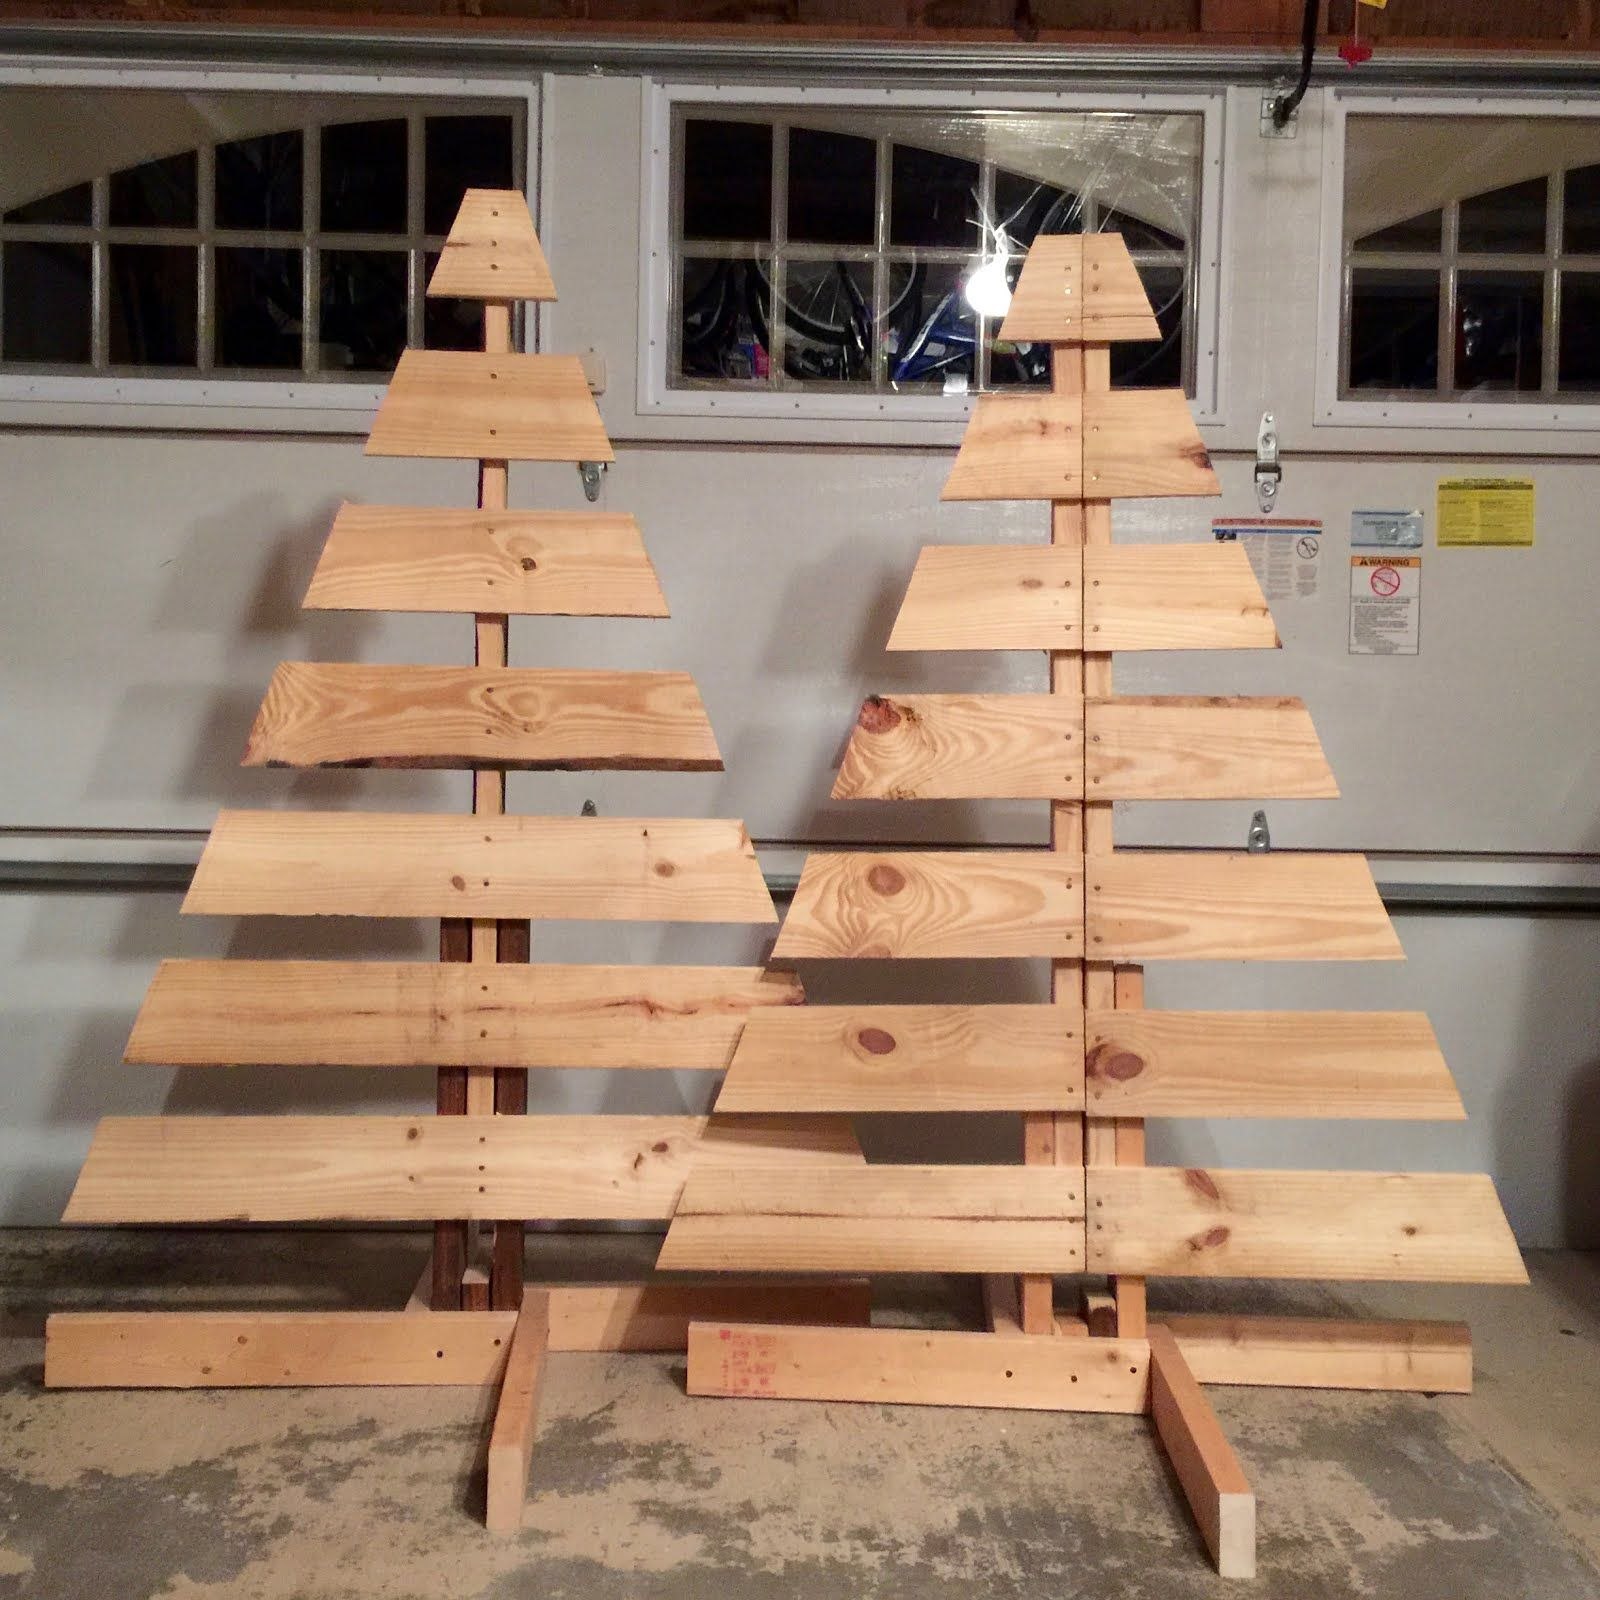 How To Make Two Christmas Trees From One Wooden Pallet Live Love Laugh Blog Pallet Wood Christmas Tree Wooden Pallet Christmas Tree Pallet Wood Christmas